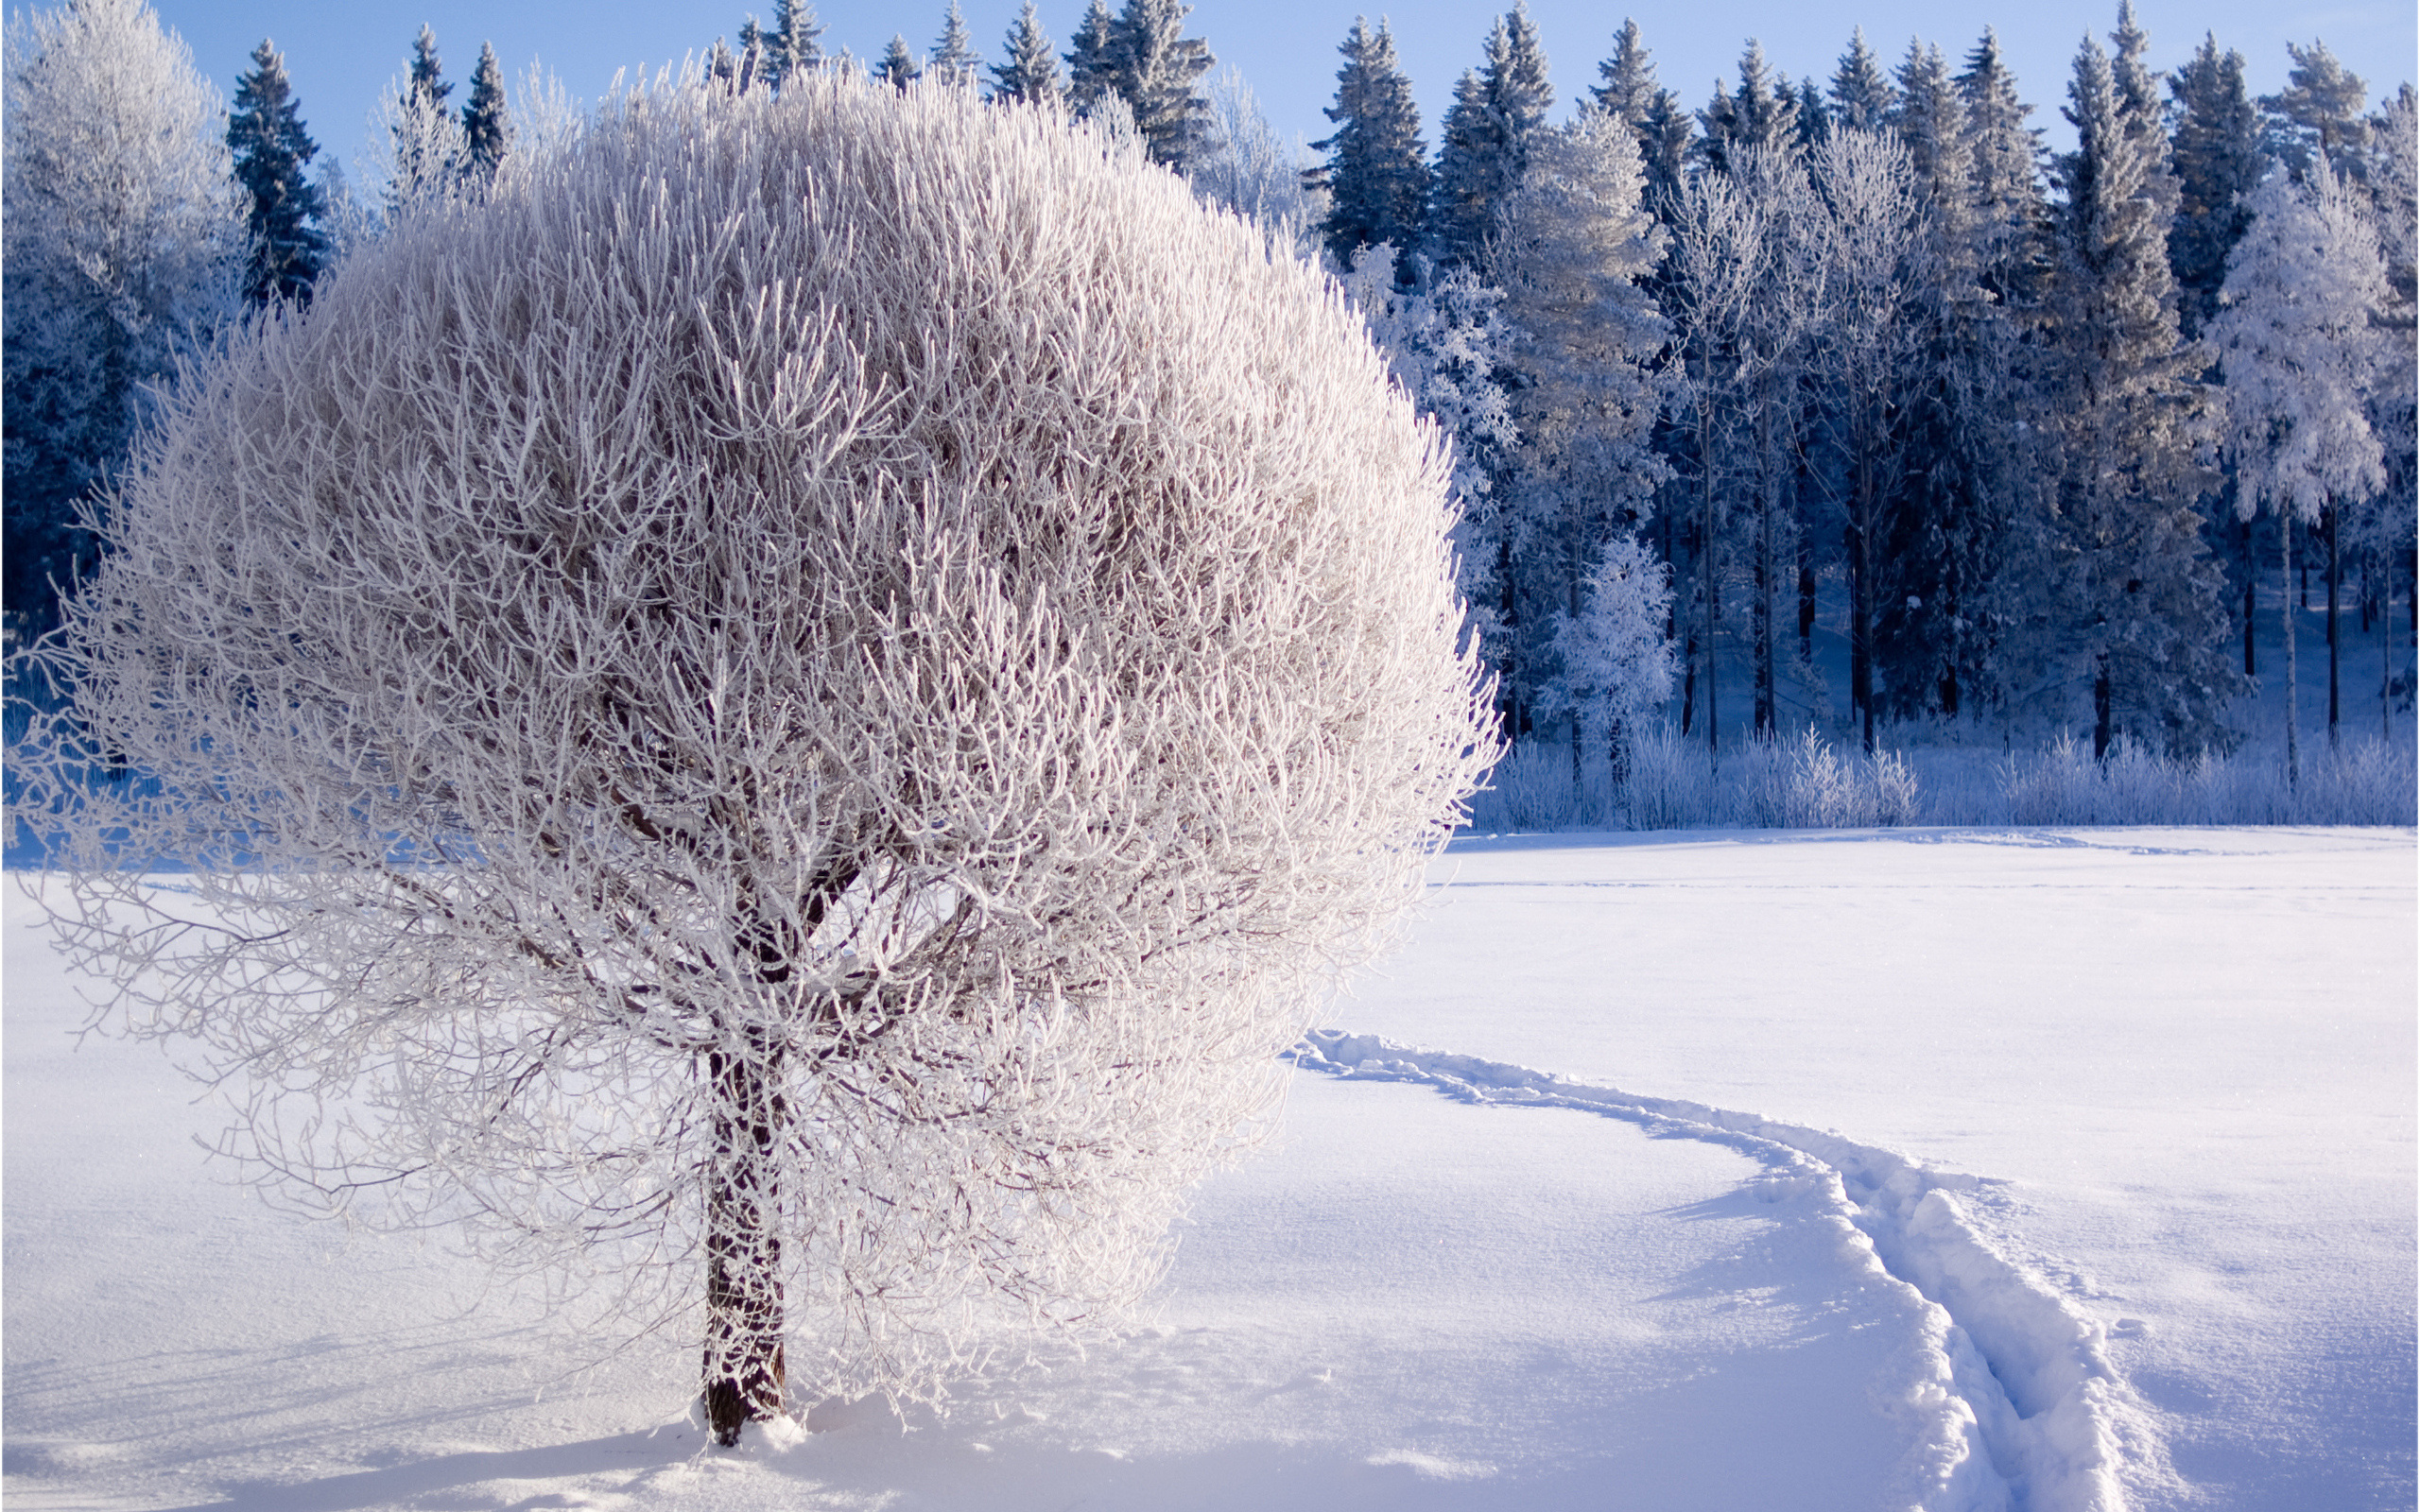 Cars 2 Cartoon Wallpaper Beautiful White Frozen Tree Hd Winter Season